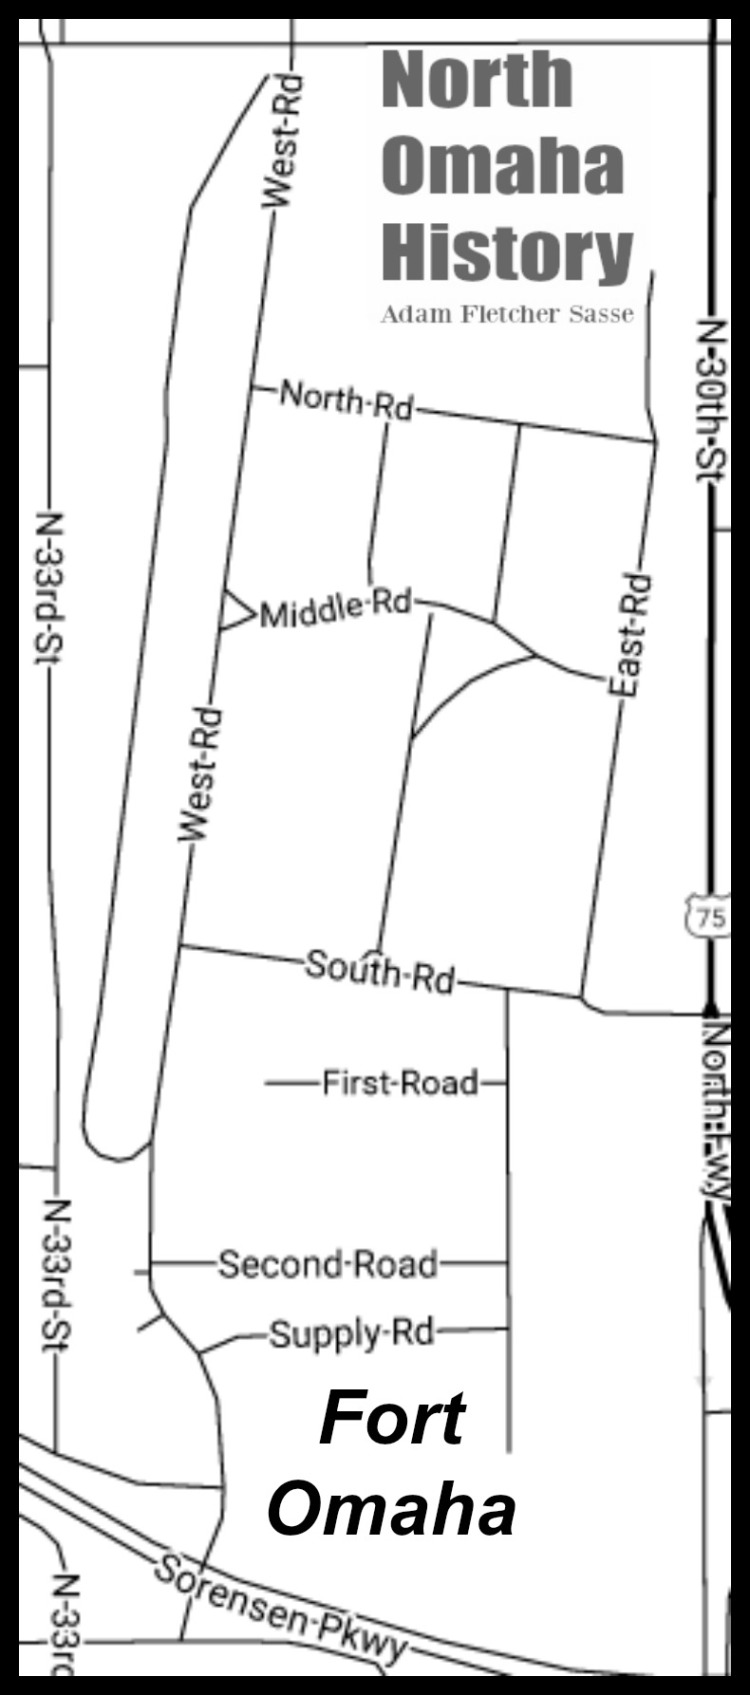 Map of Fort Omaha, North Omaha, Nebraska